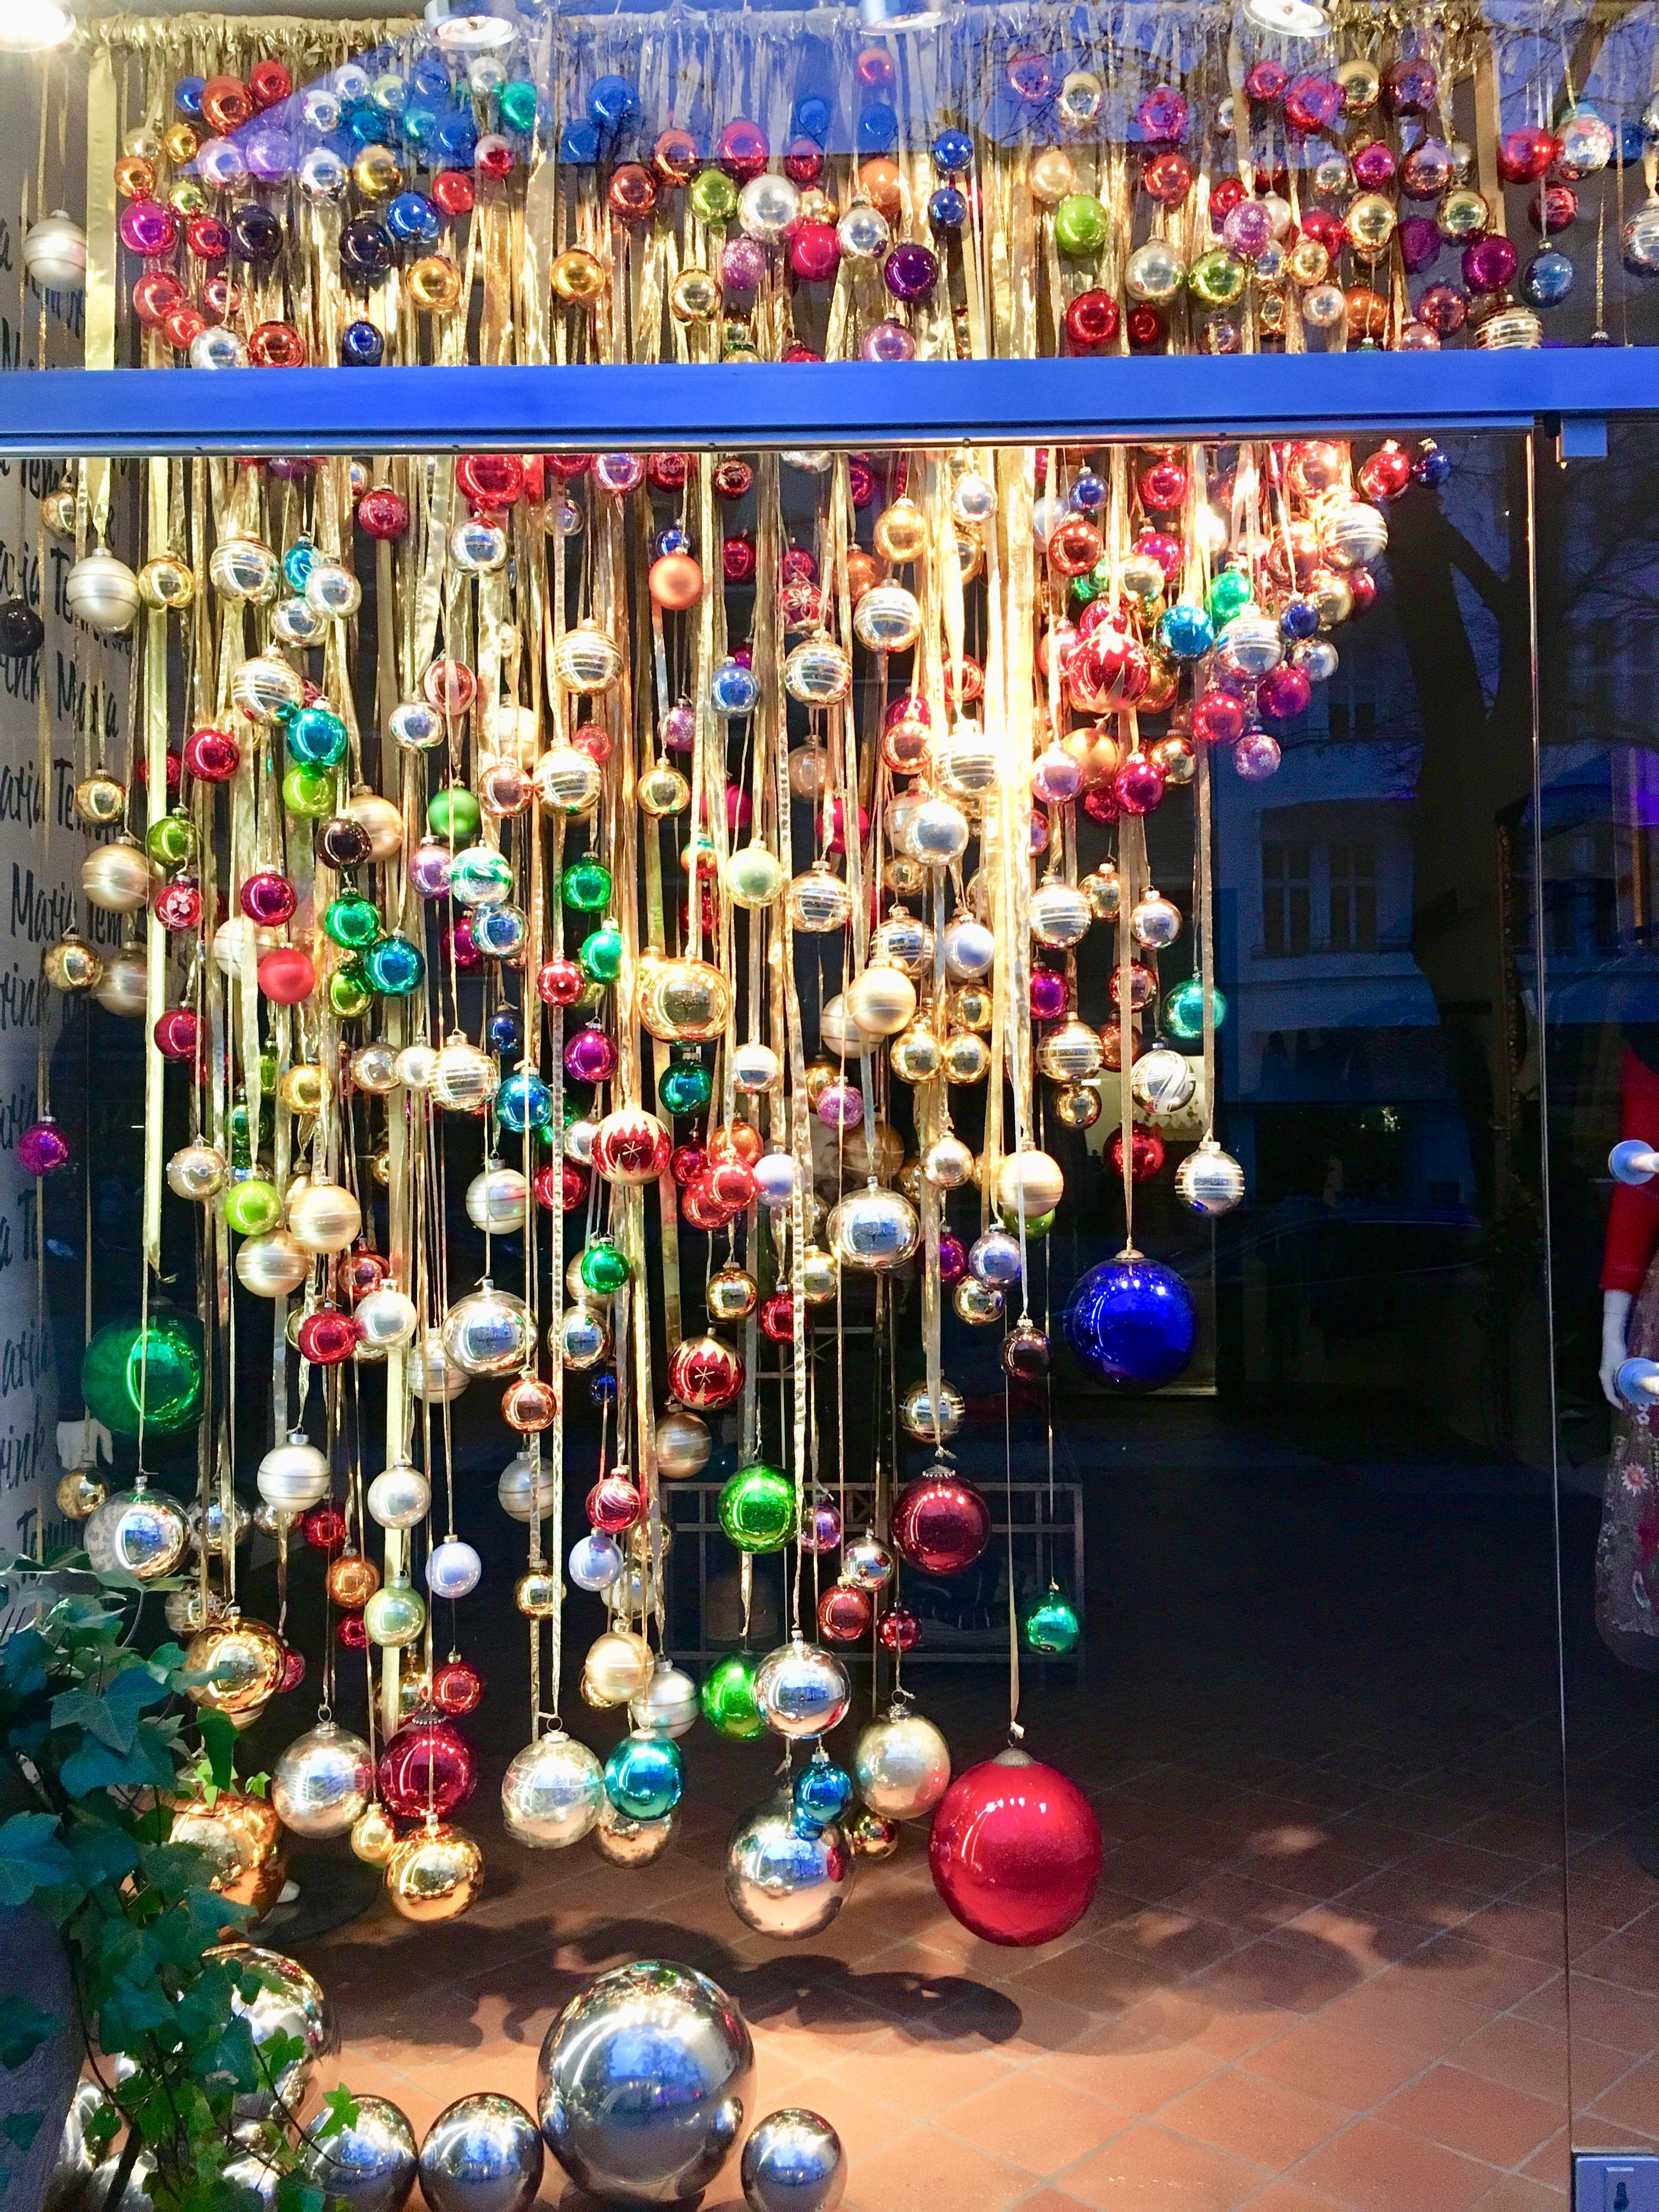 Retail Christmas Window Display Ideas 2020 Pin by MO+CO on HOLIDAY WORK in 2020 | Christmas shop displays